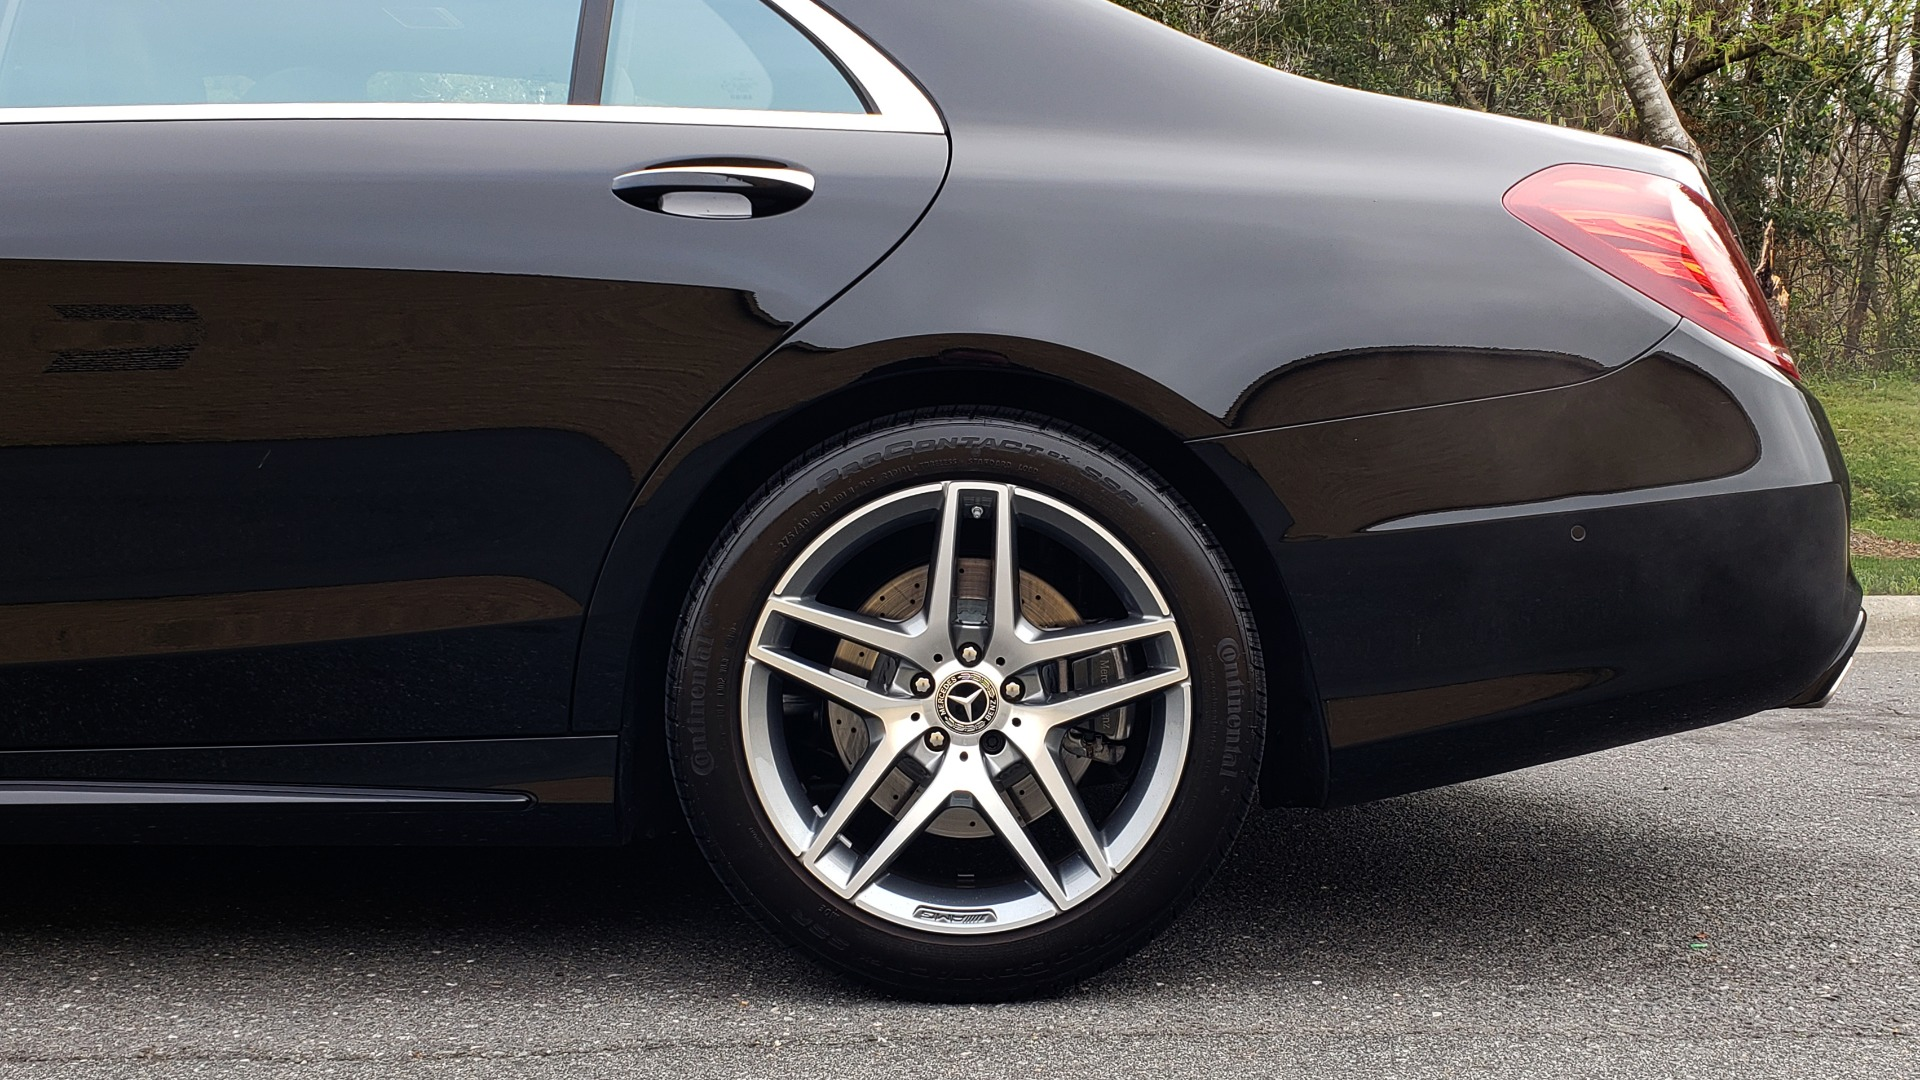 Used 2017 Mercedes-Benz S-CLASS S 550 4MATIC SPORT / PREM PKG / WARMTH & COMFORT / KEYLESS-GO for sale Sold at Formula Imports in Charlotte NC 28227 94